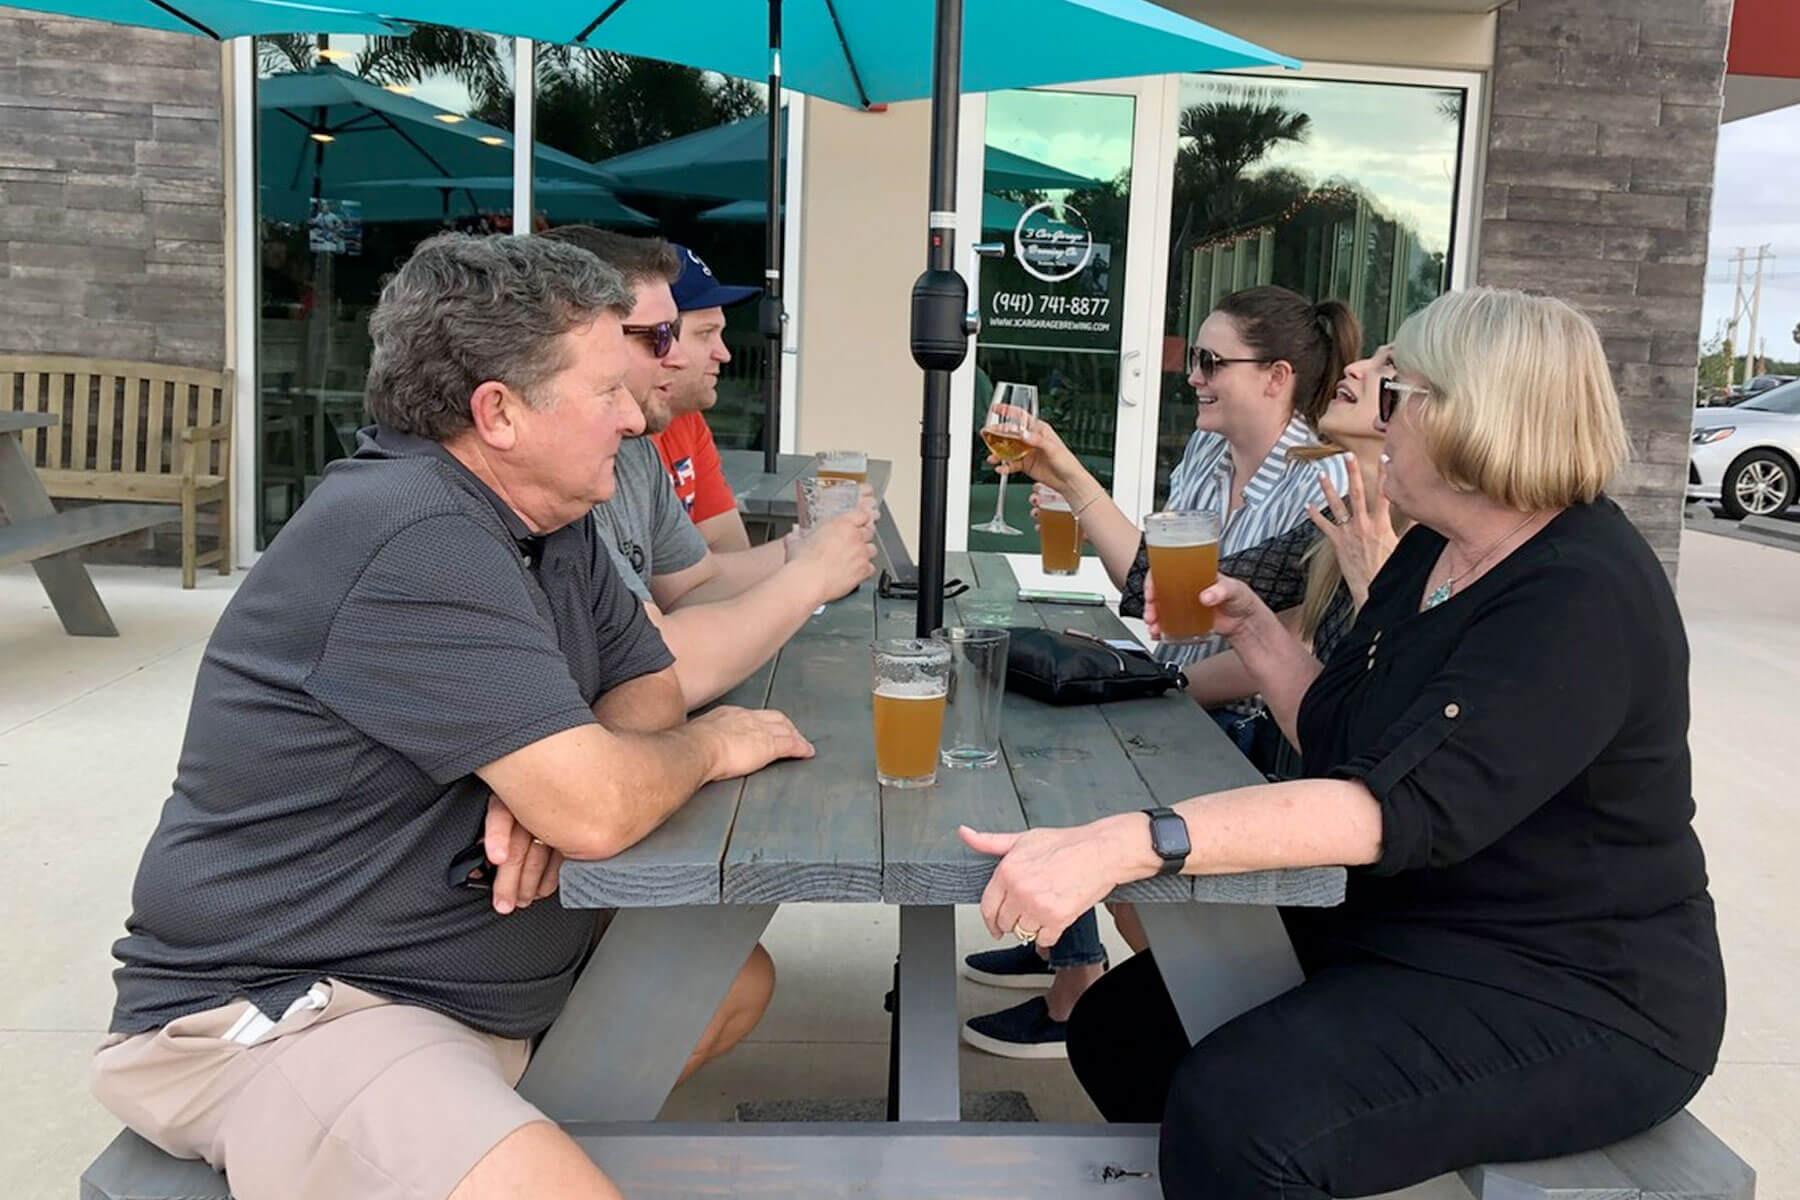 Beer drinkers sit at table on the patio outside 3 Car Garage Brewing in Bradenton, Florida